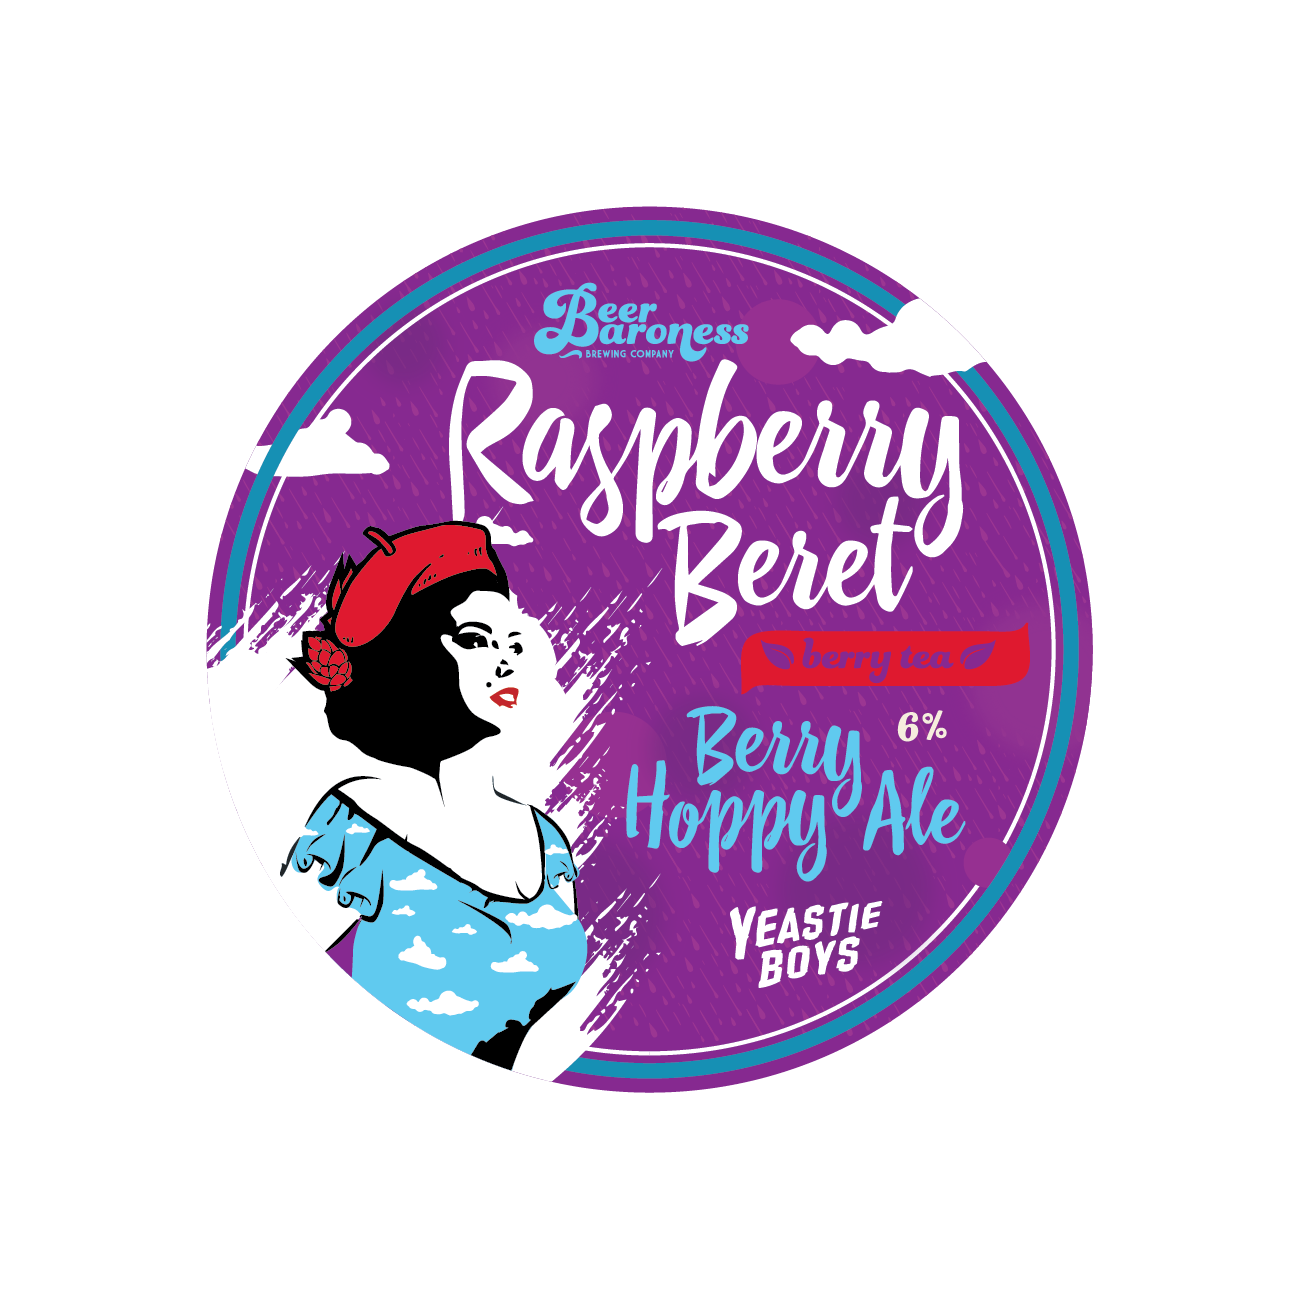 DD002982 Beer Baroness Raspberry Beret Tap Badge Supply - Cropped.png